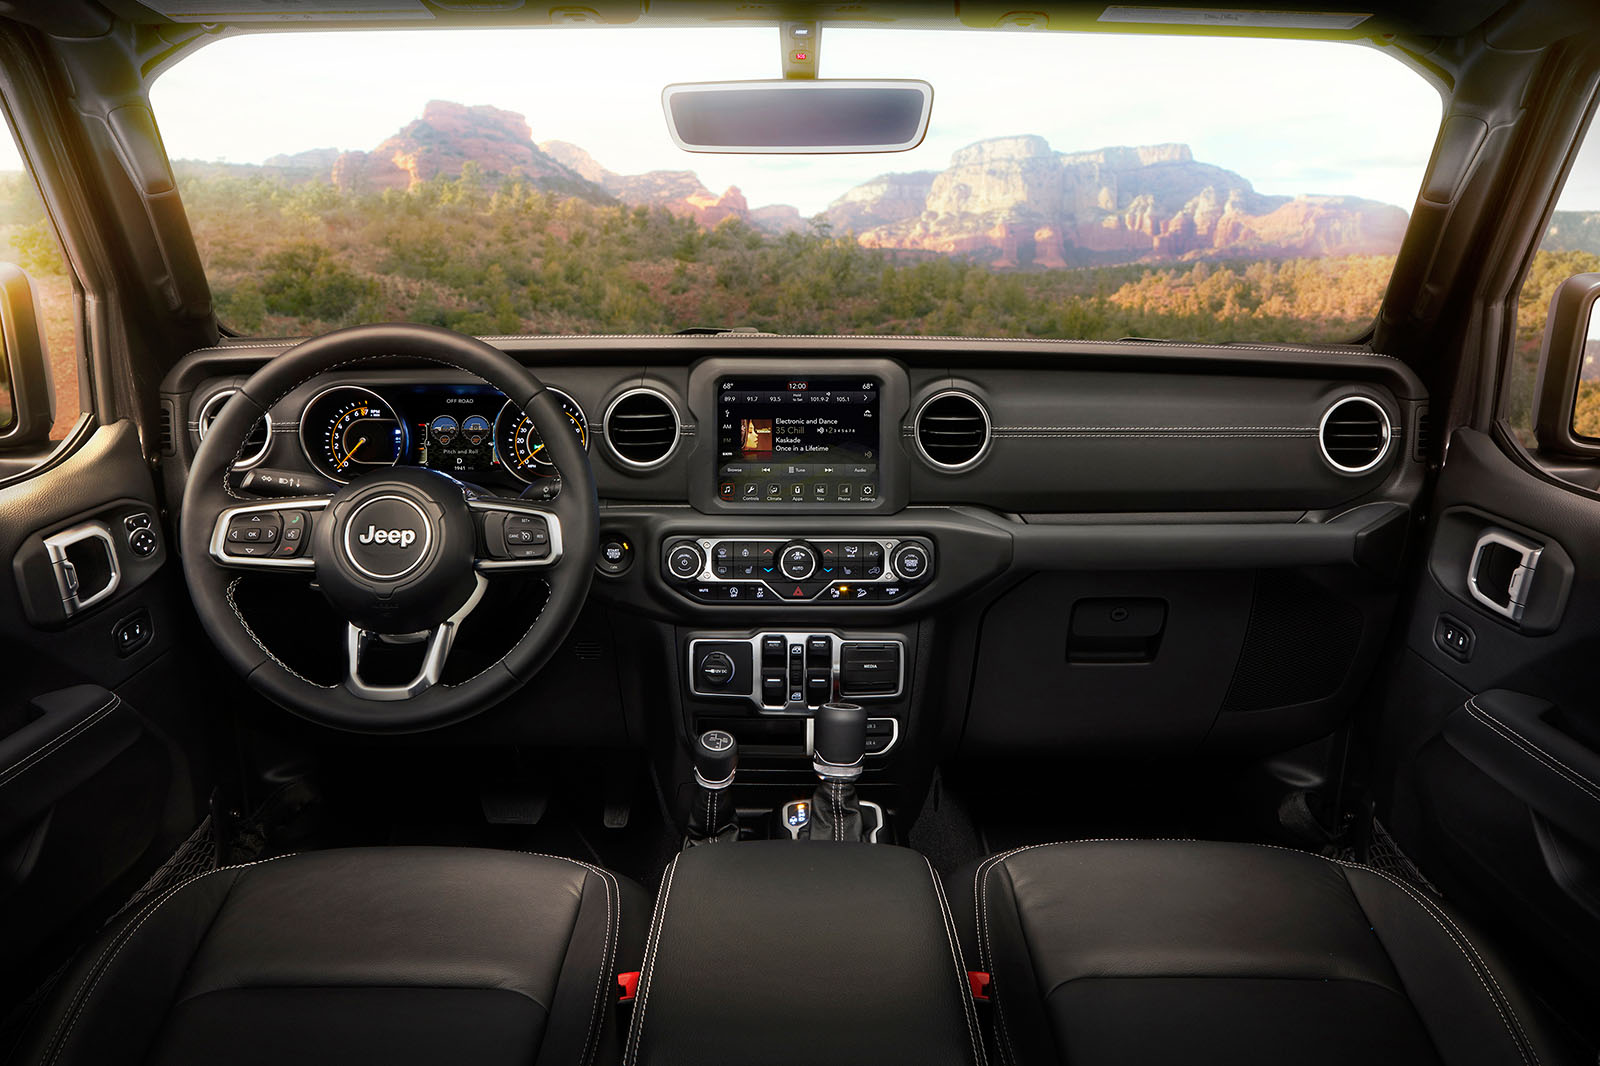 Jeep Wrangler 2019 interior